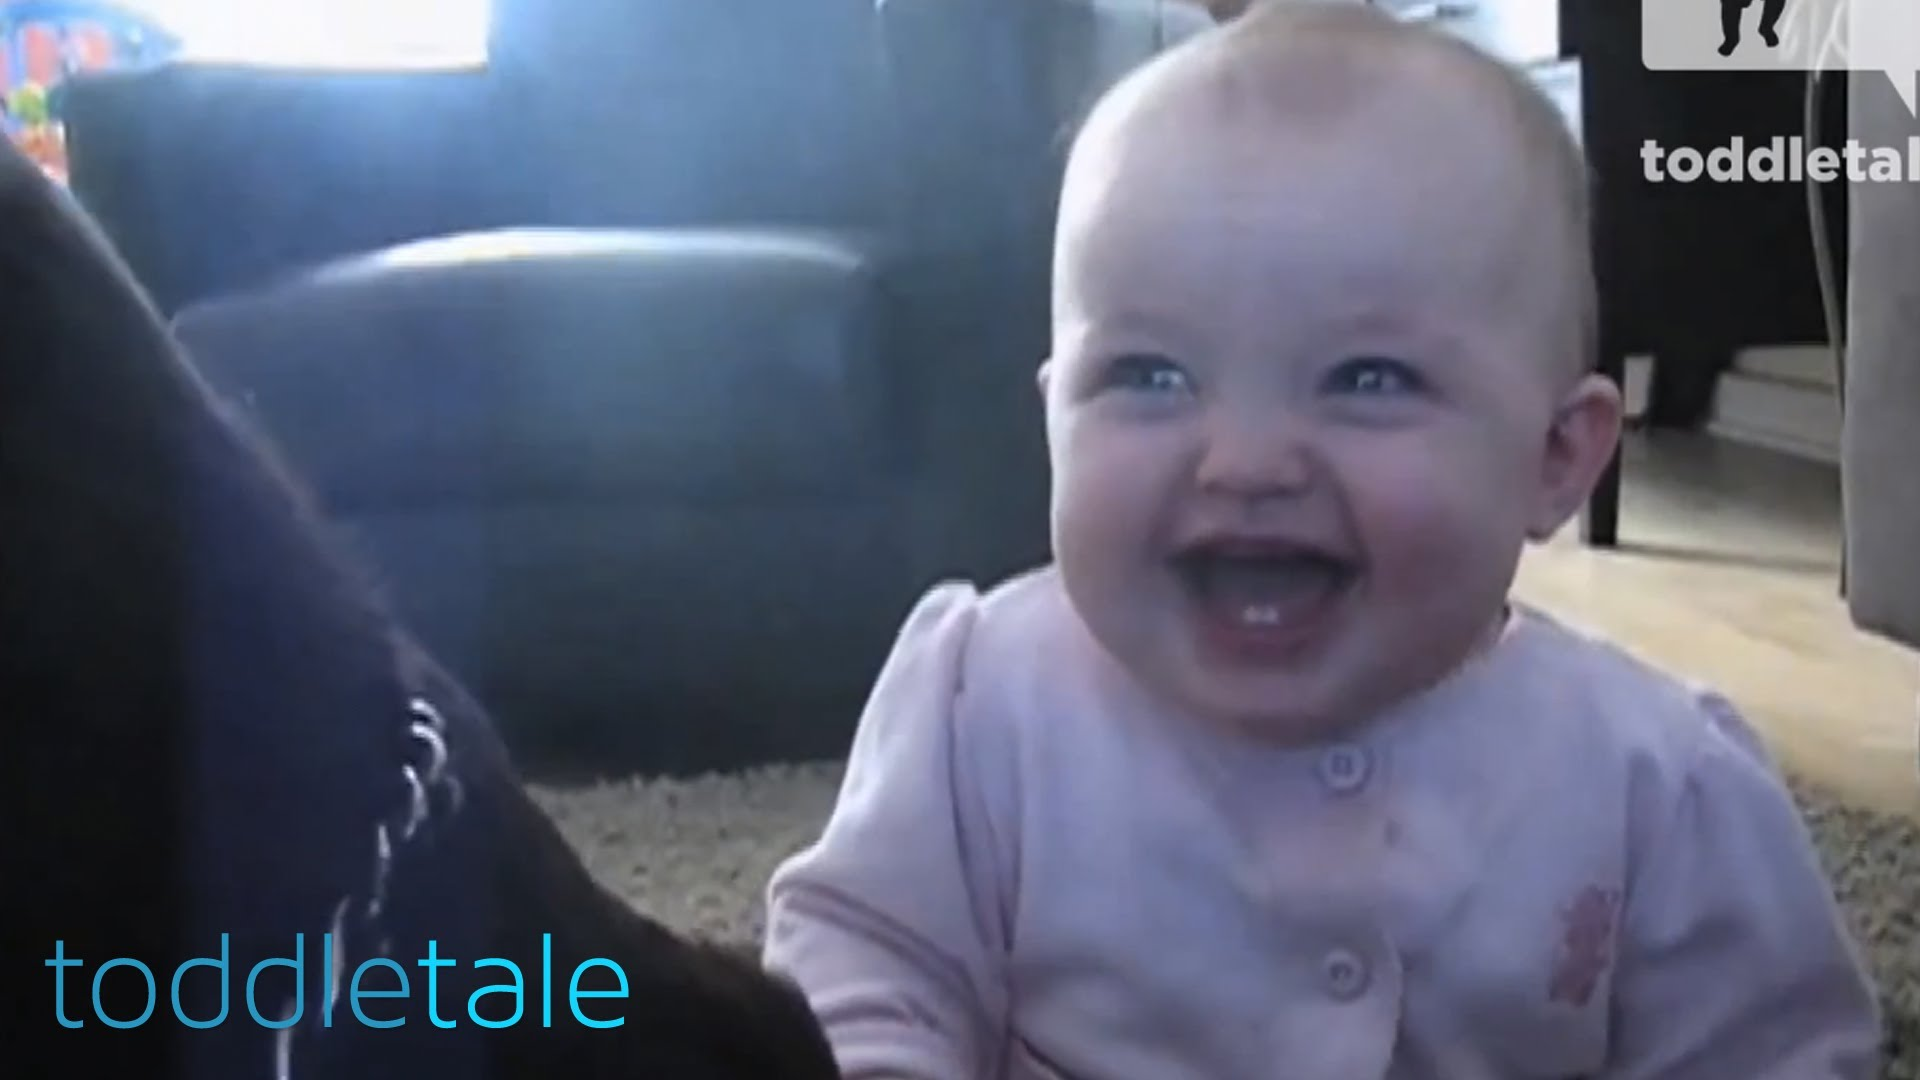 Evil Laughing Baby Gif – images free download